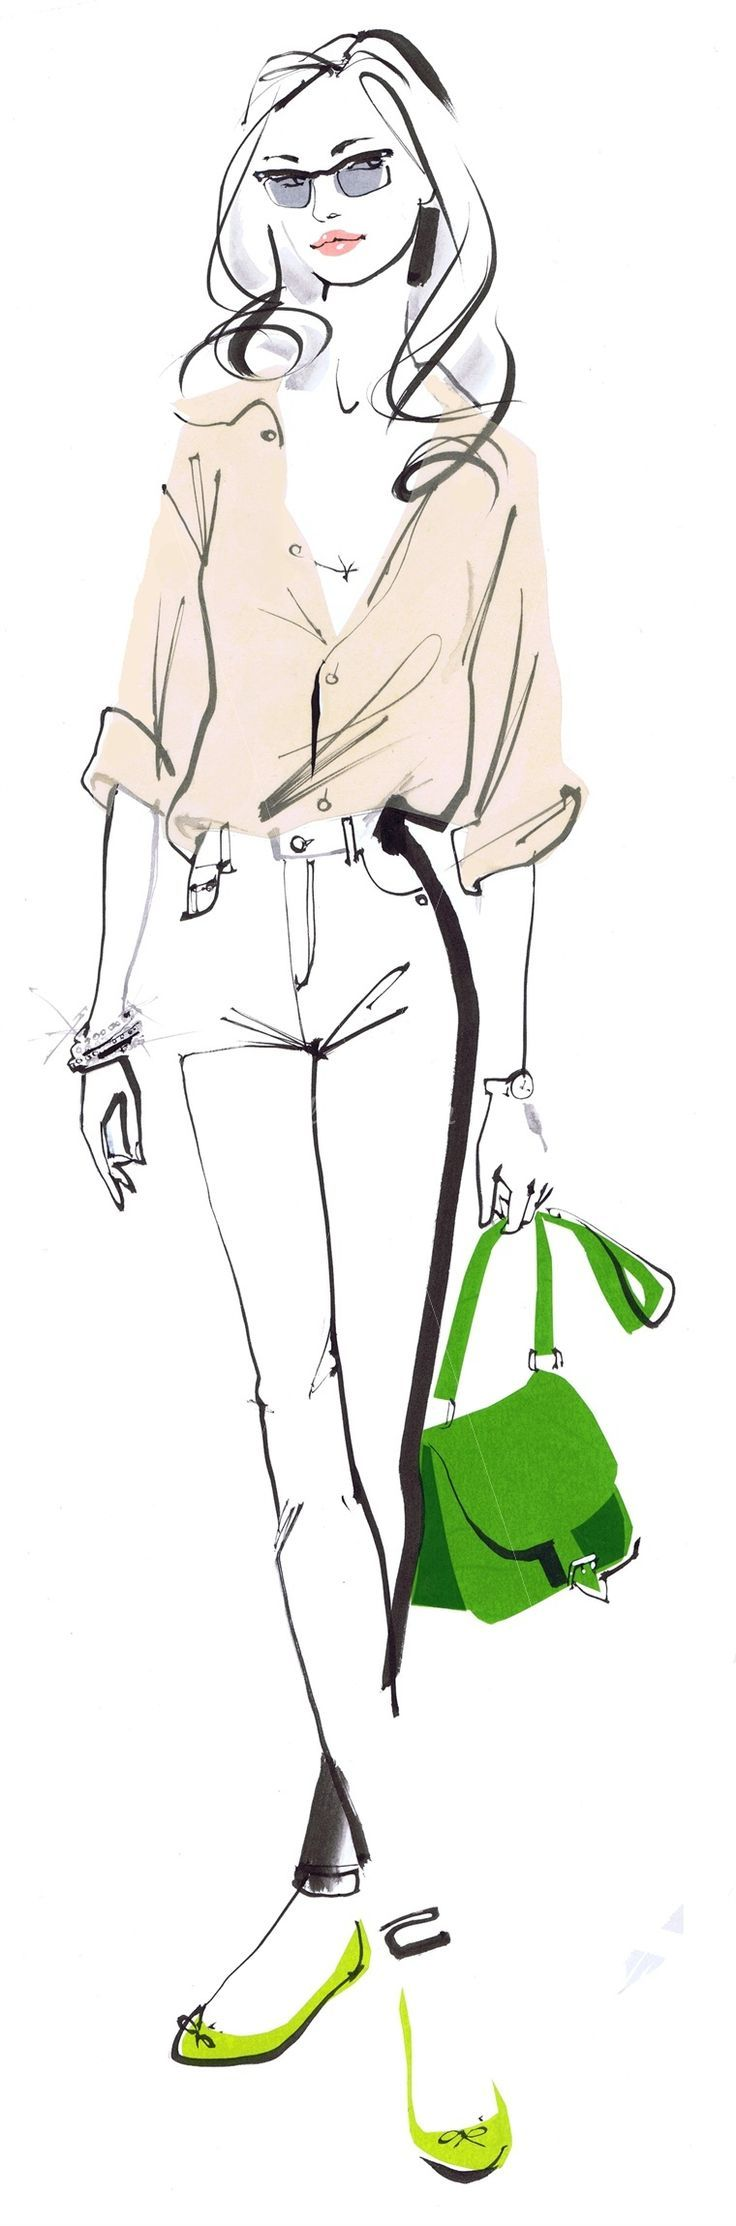 Fashion lady holding a bag - An illustration by Jacqueline Bissett